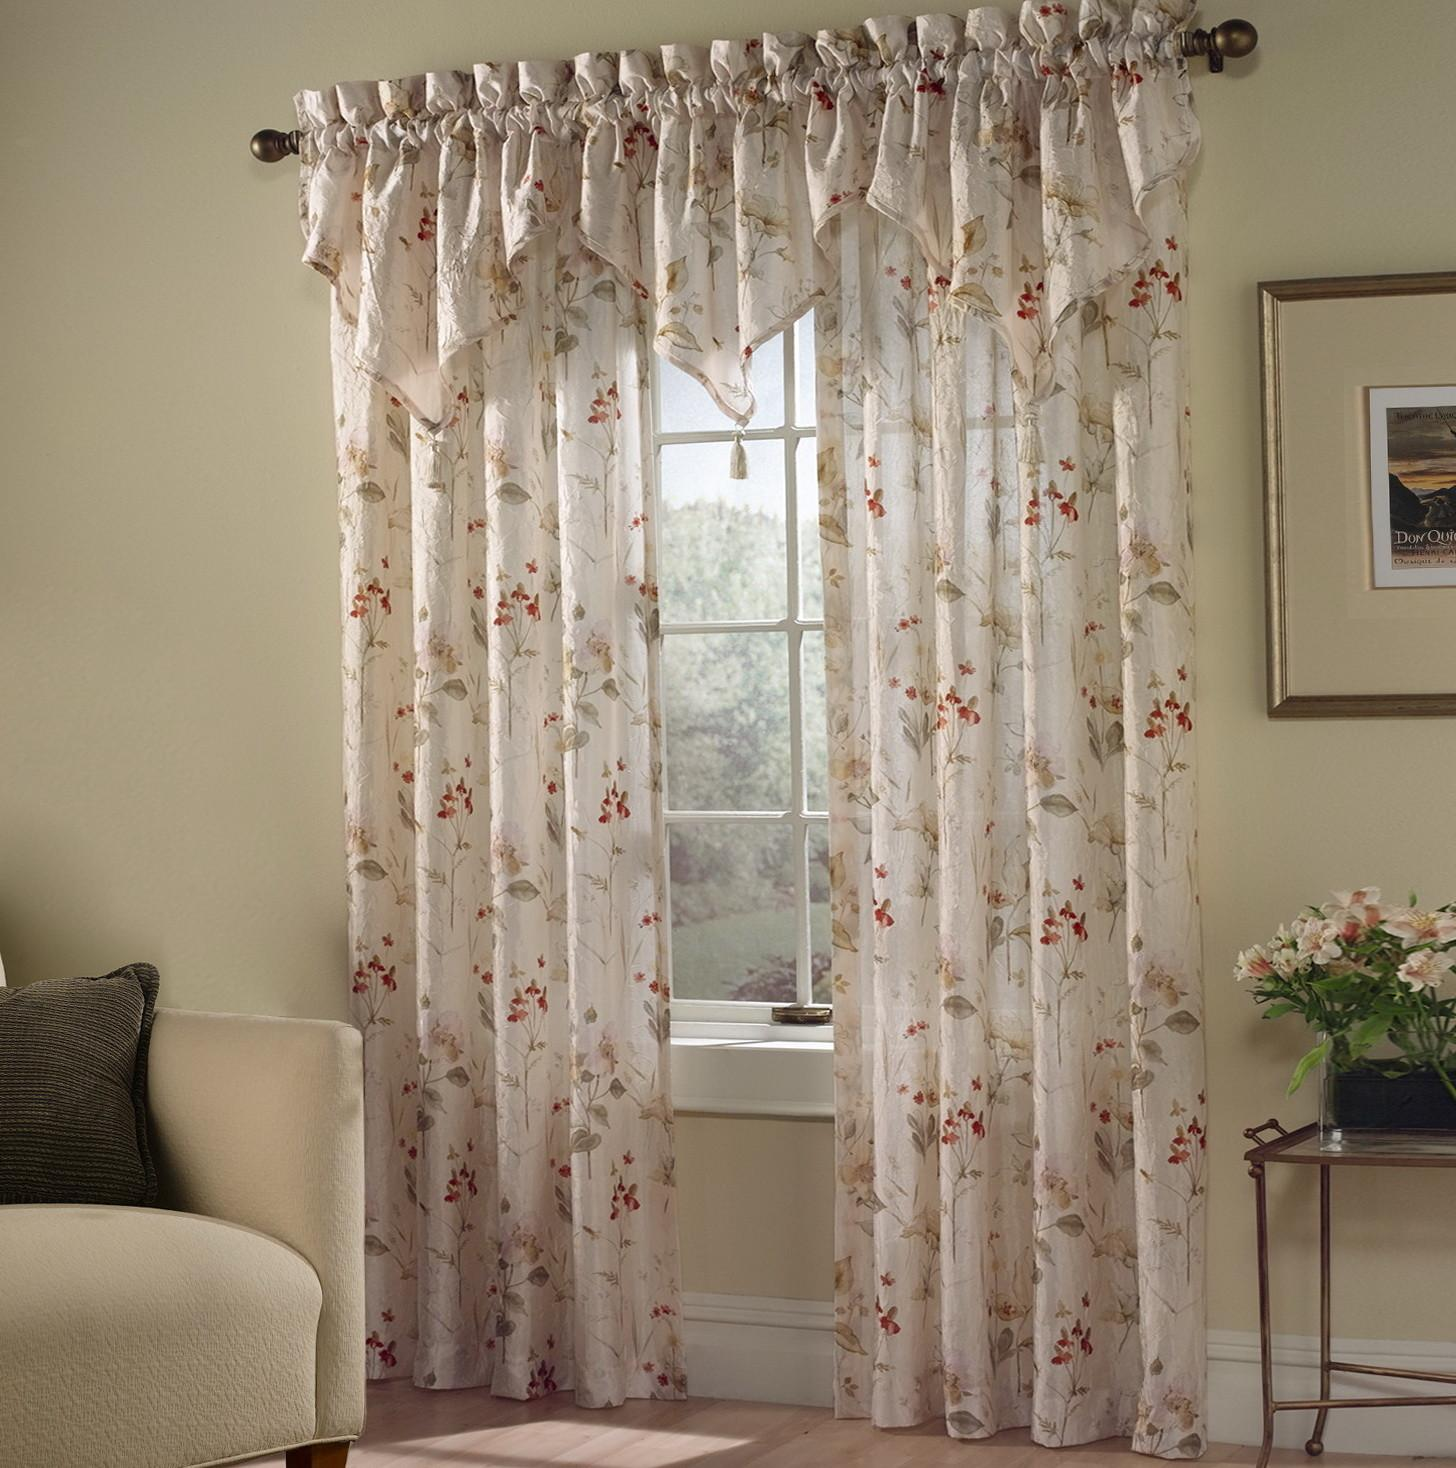 Sheer Swag Curtain Ideas Home Design